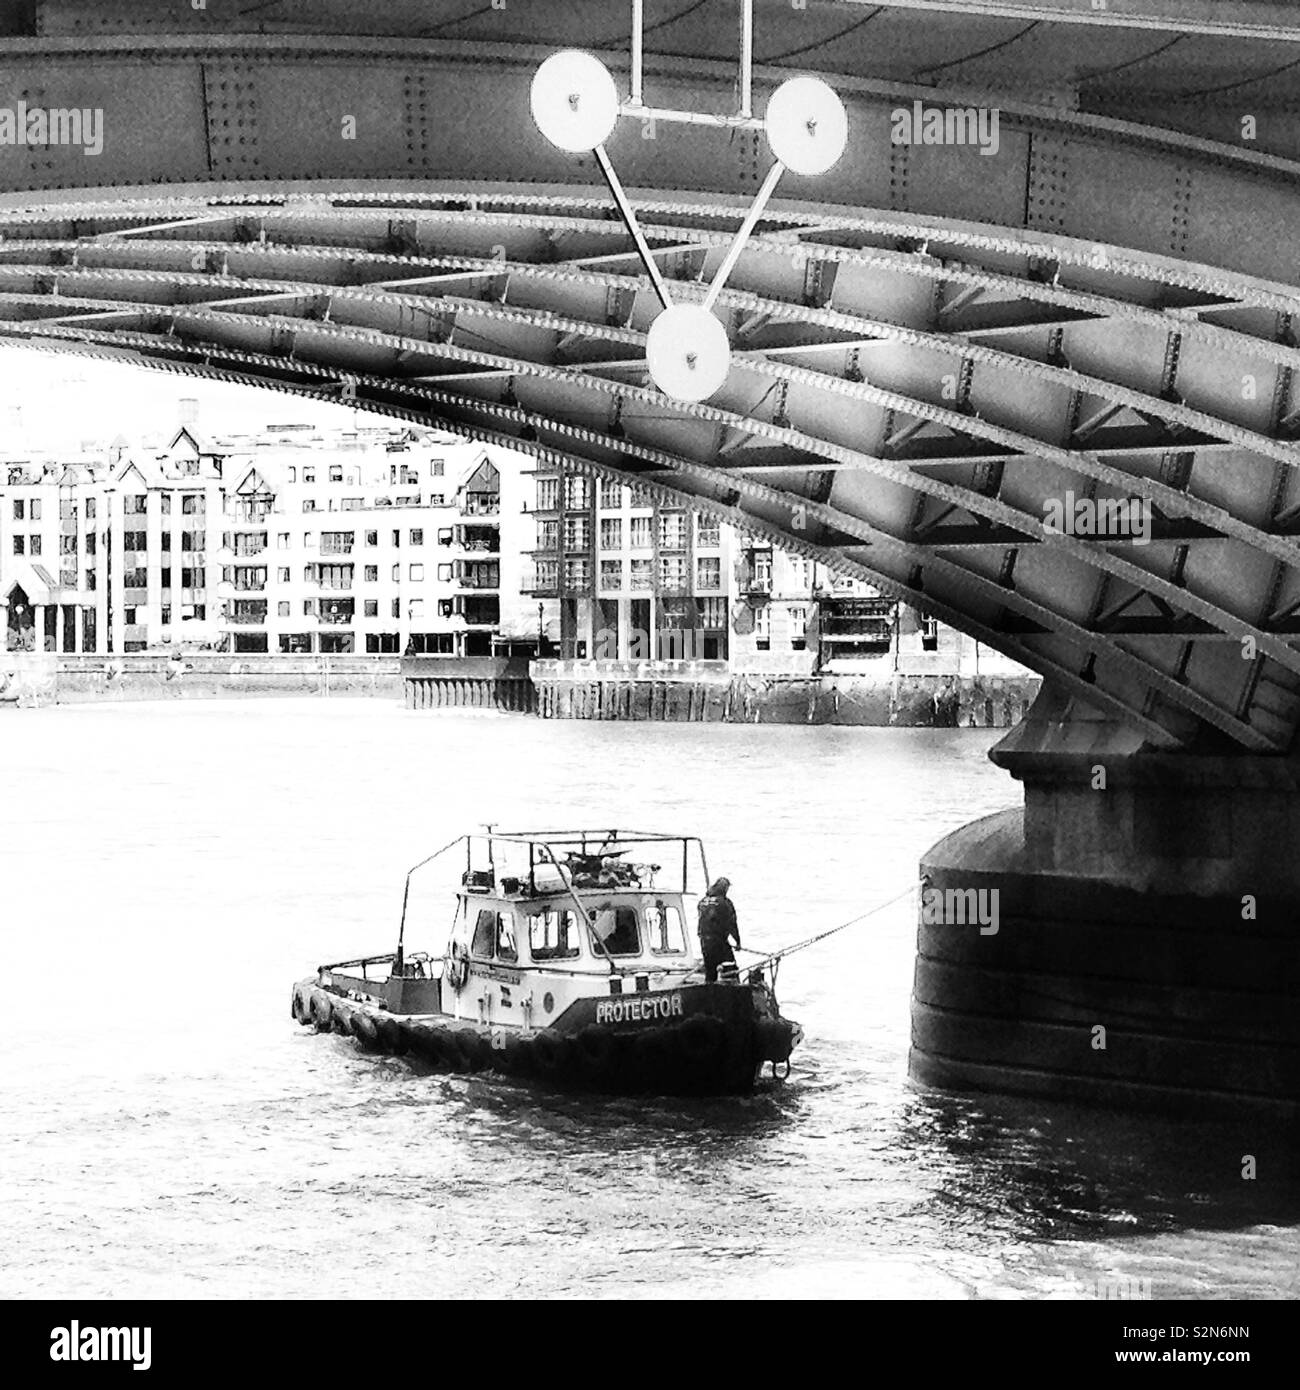 A tugboat moored under one of the arches of Southwark Bridge on the River Thames, London, England. - Stock Image